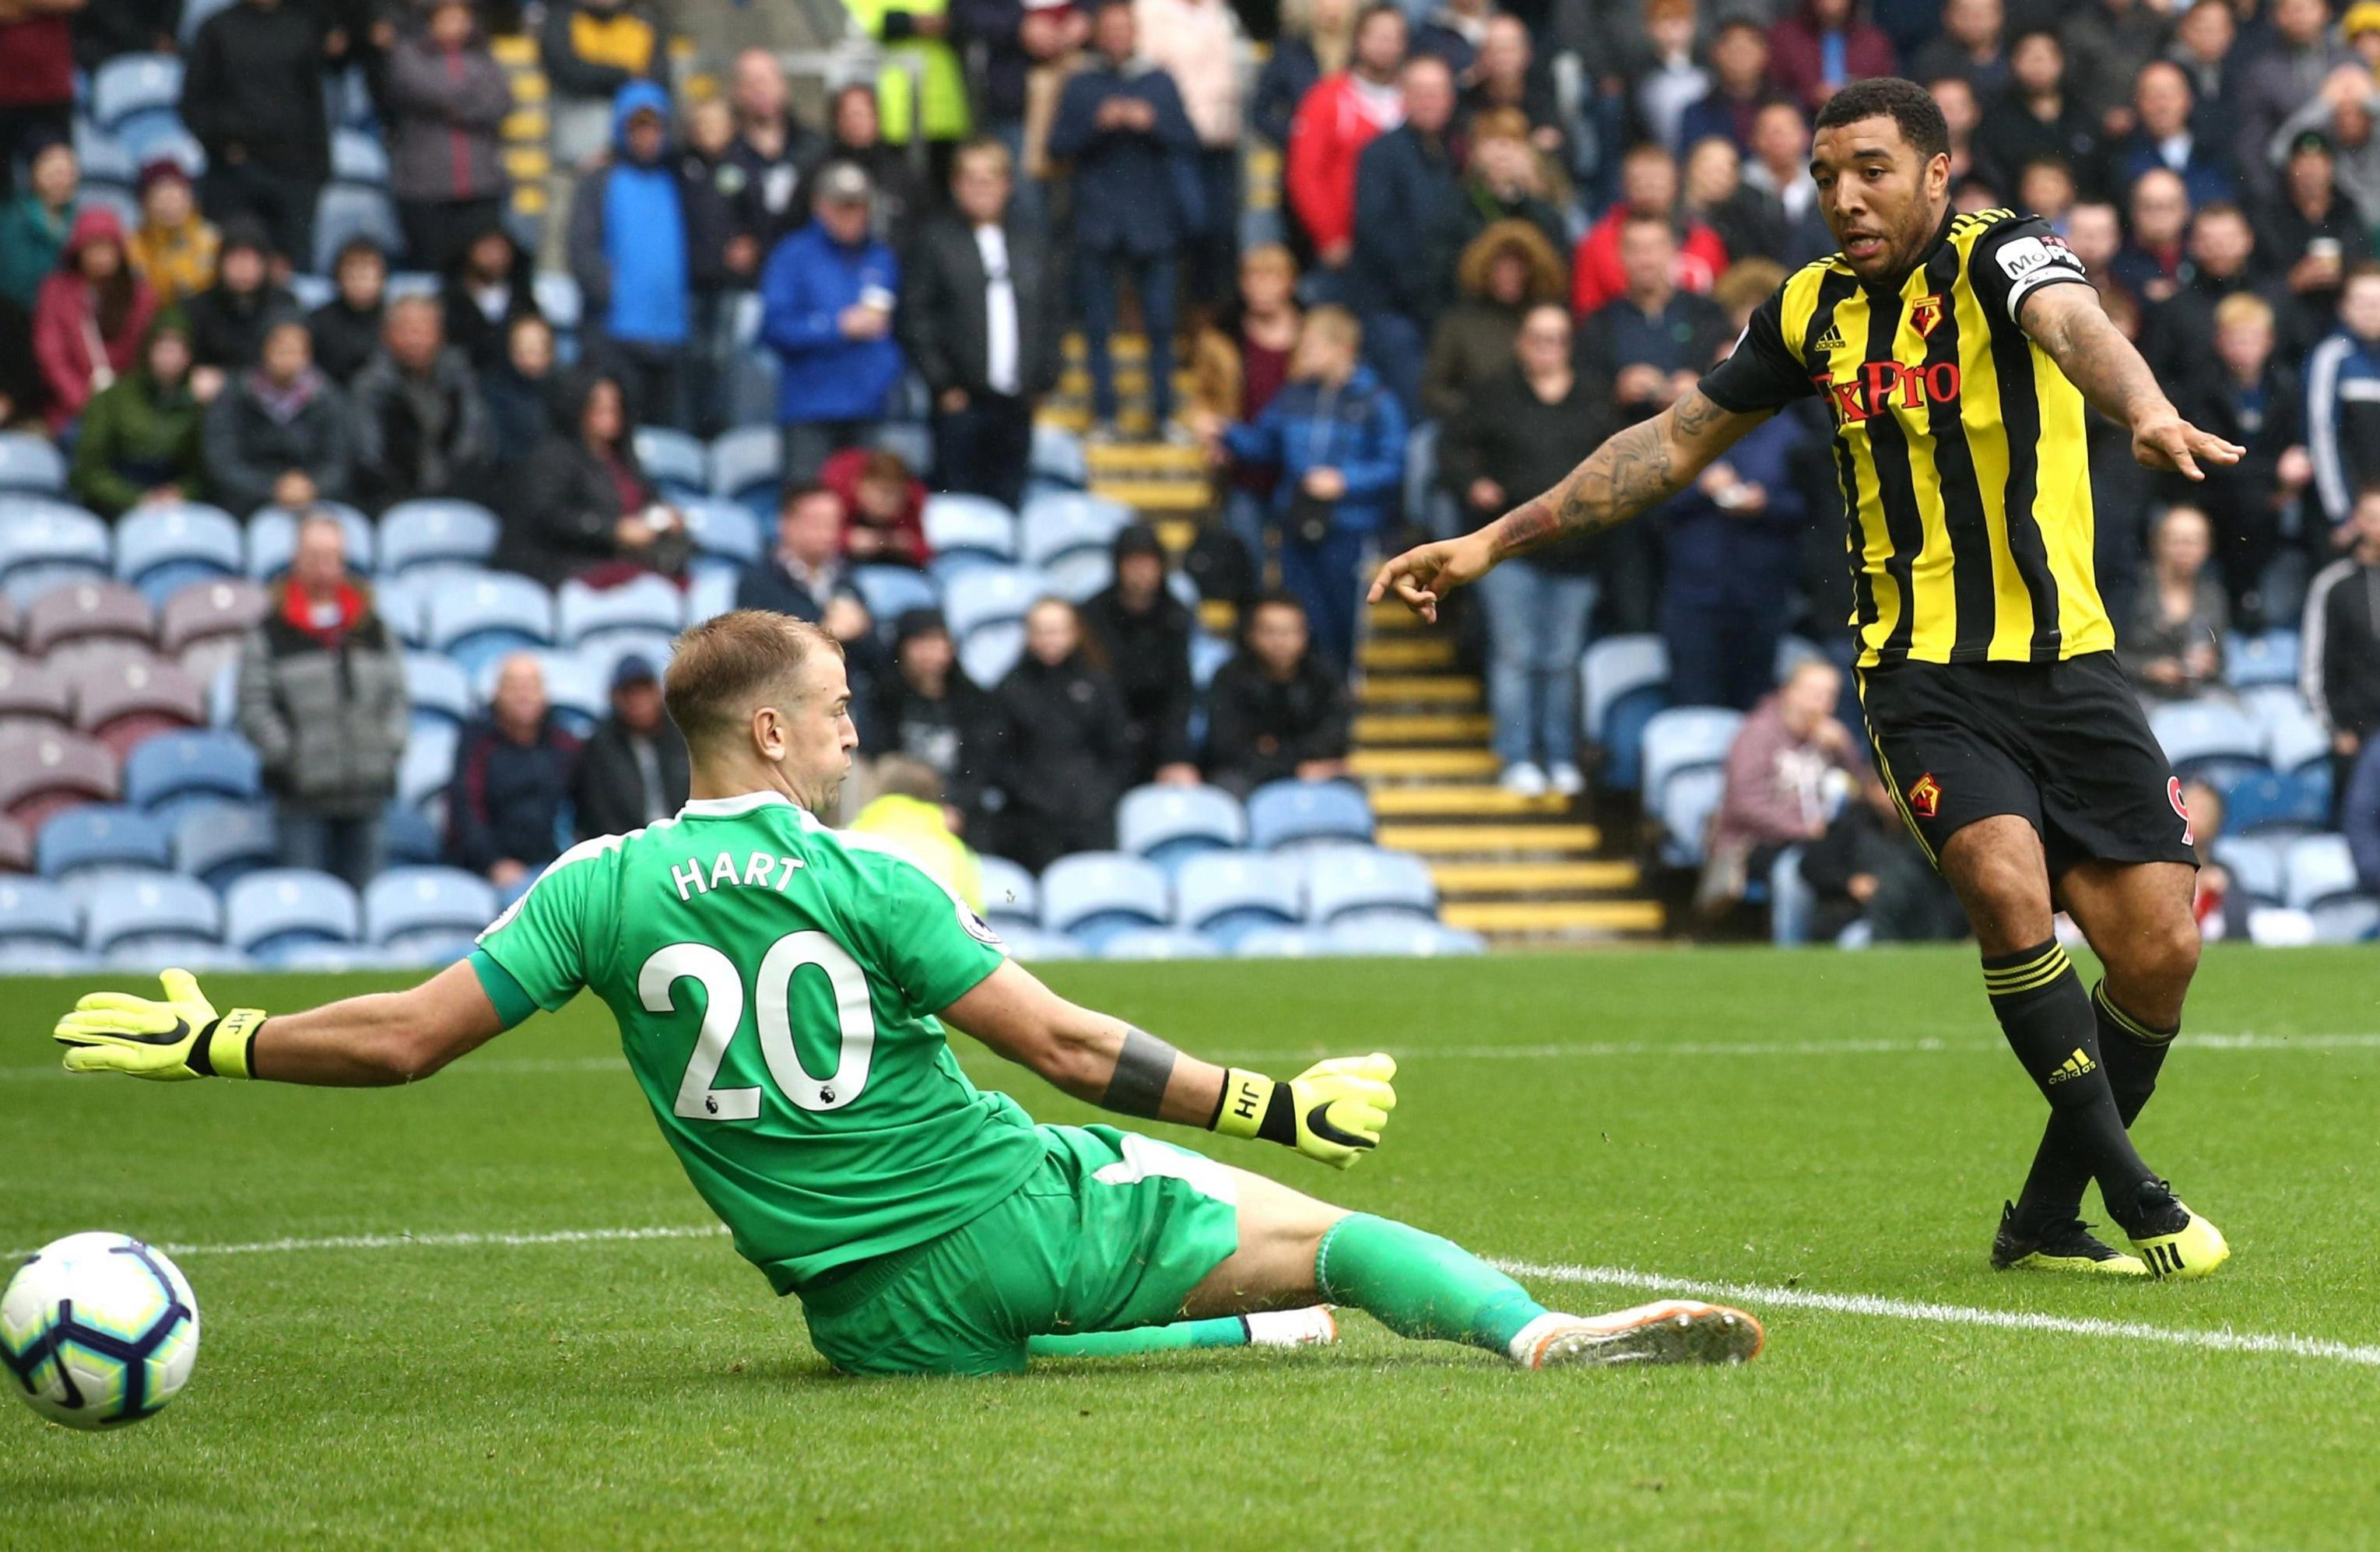 Troy Deeney restored Watford's lead just after the break with a shot from close range